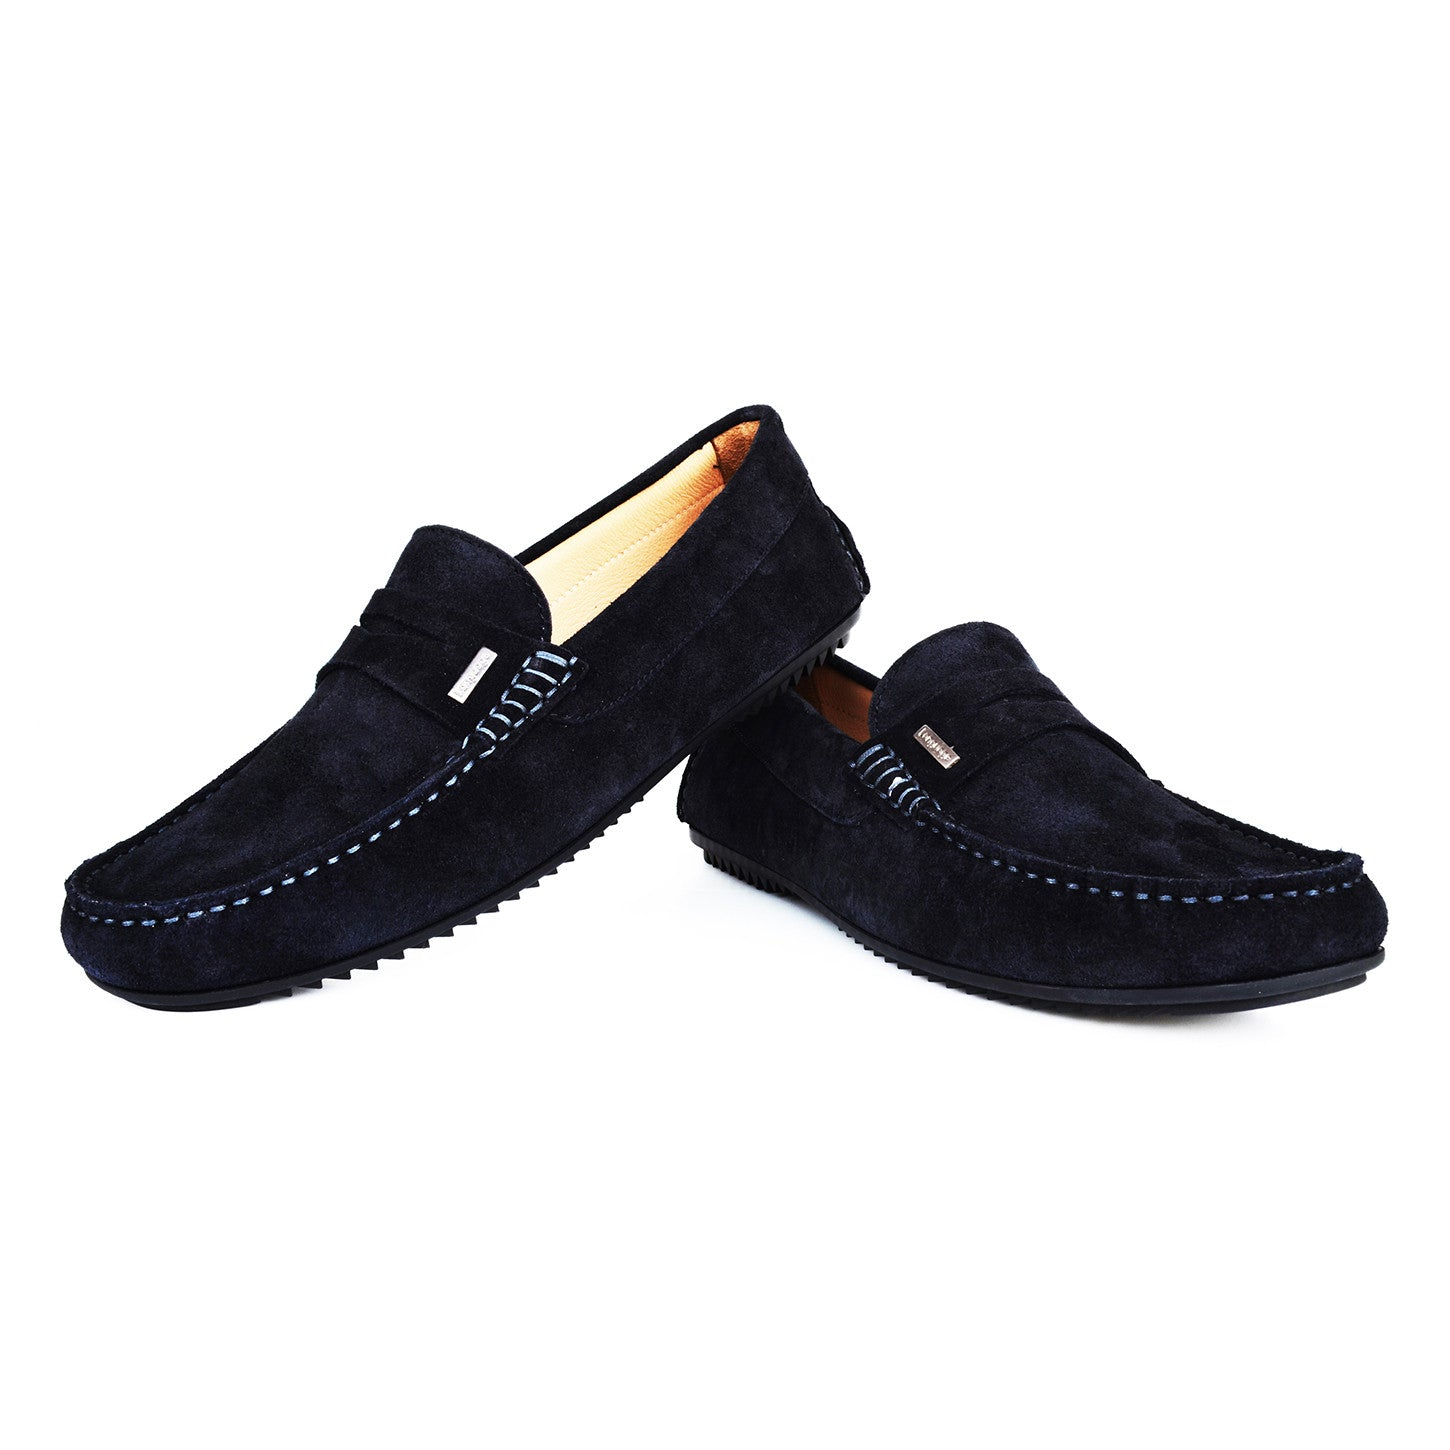 LM232 - Language Moscio Men's Casual Navy Moccasins